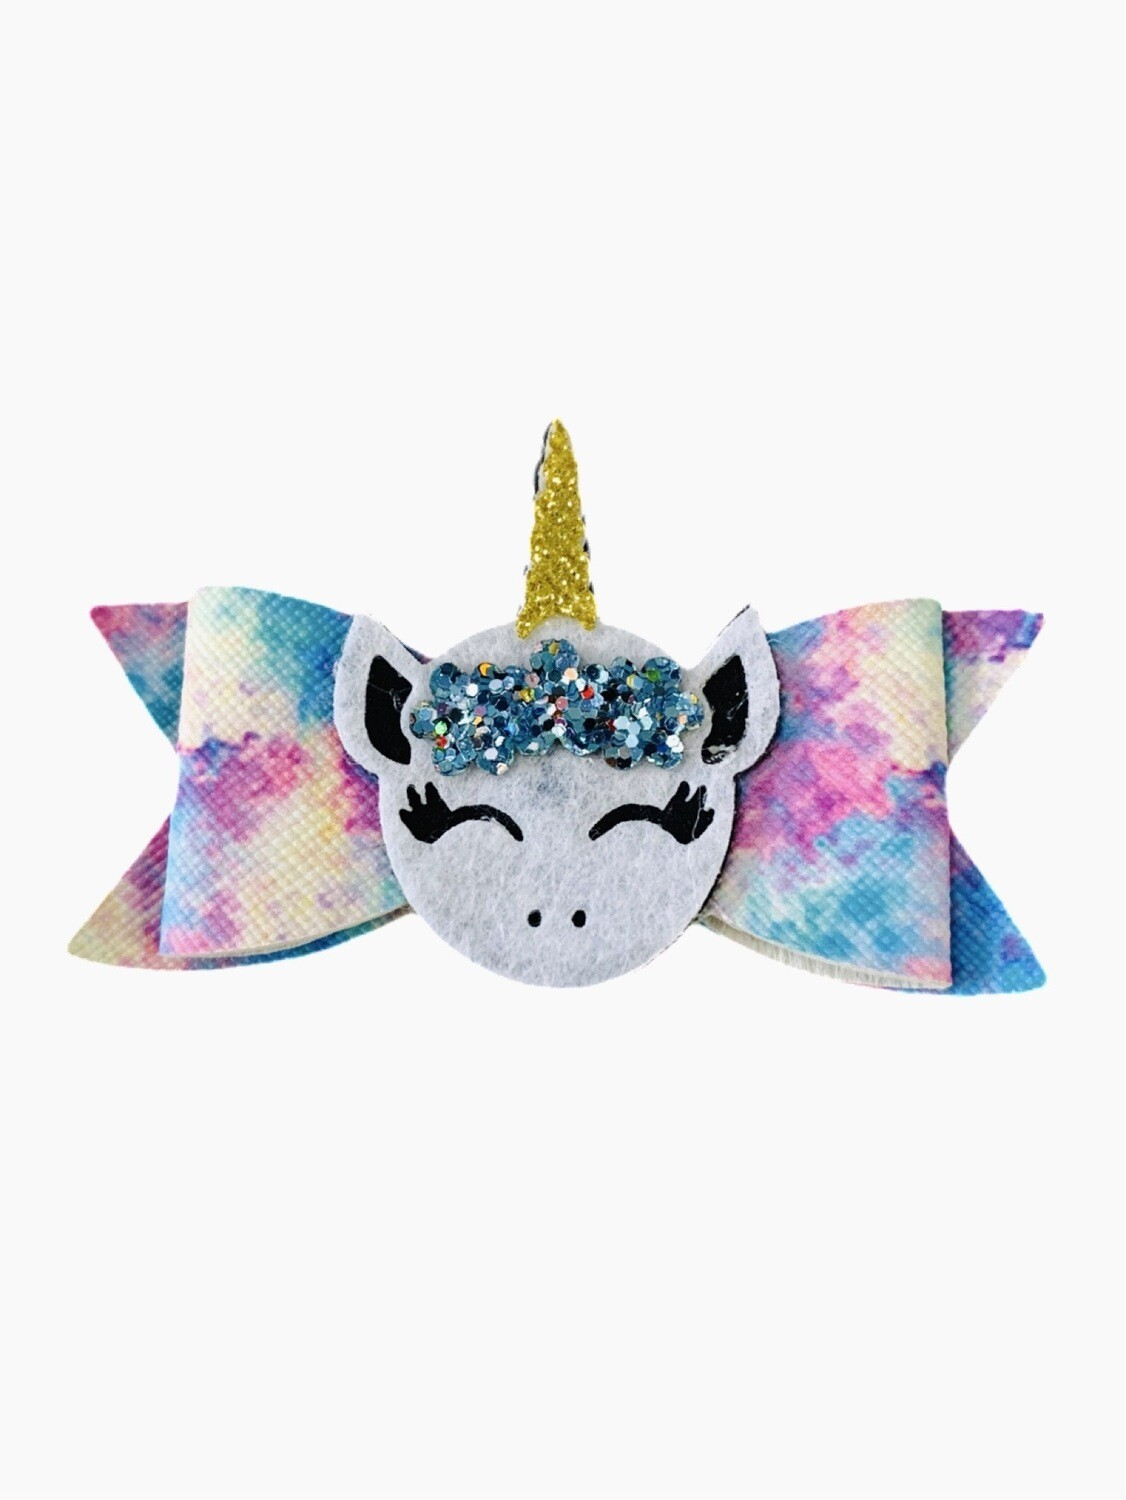 Rainbow Leather White Unicorn Feltie Accent Faux Leather Hair Bow